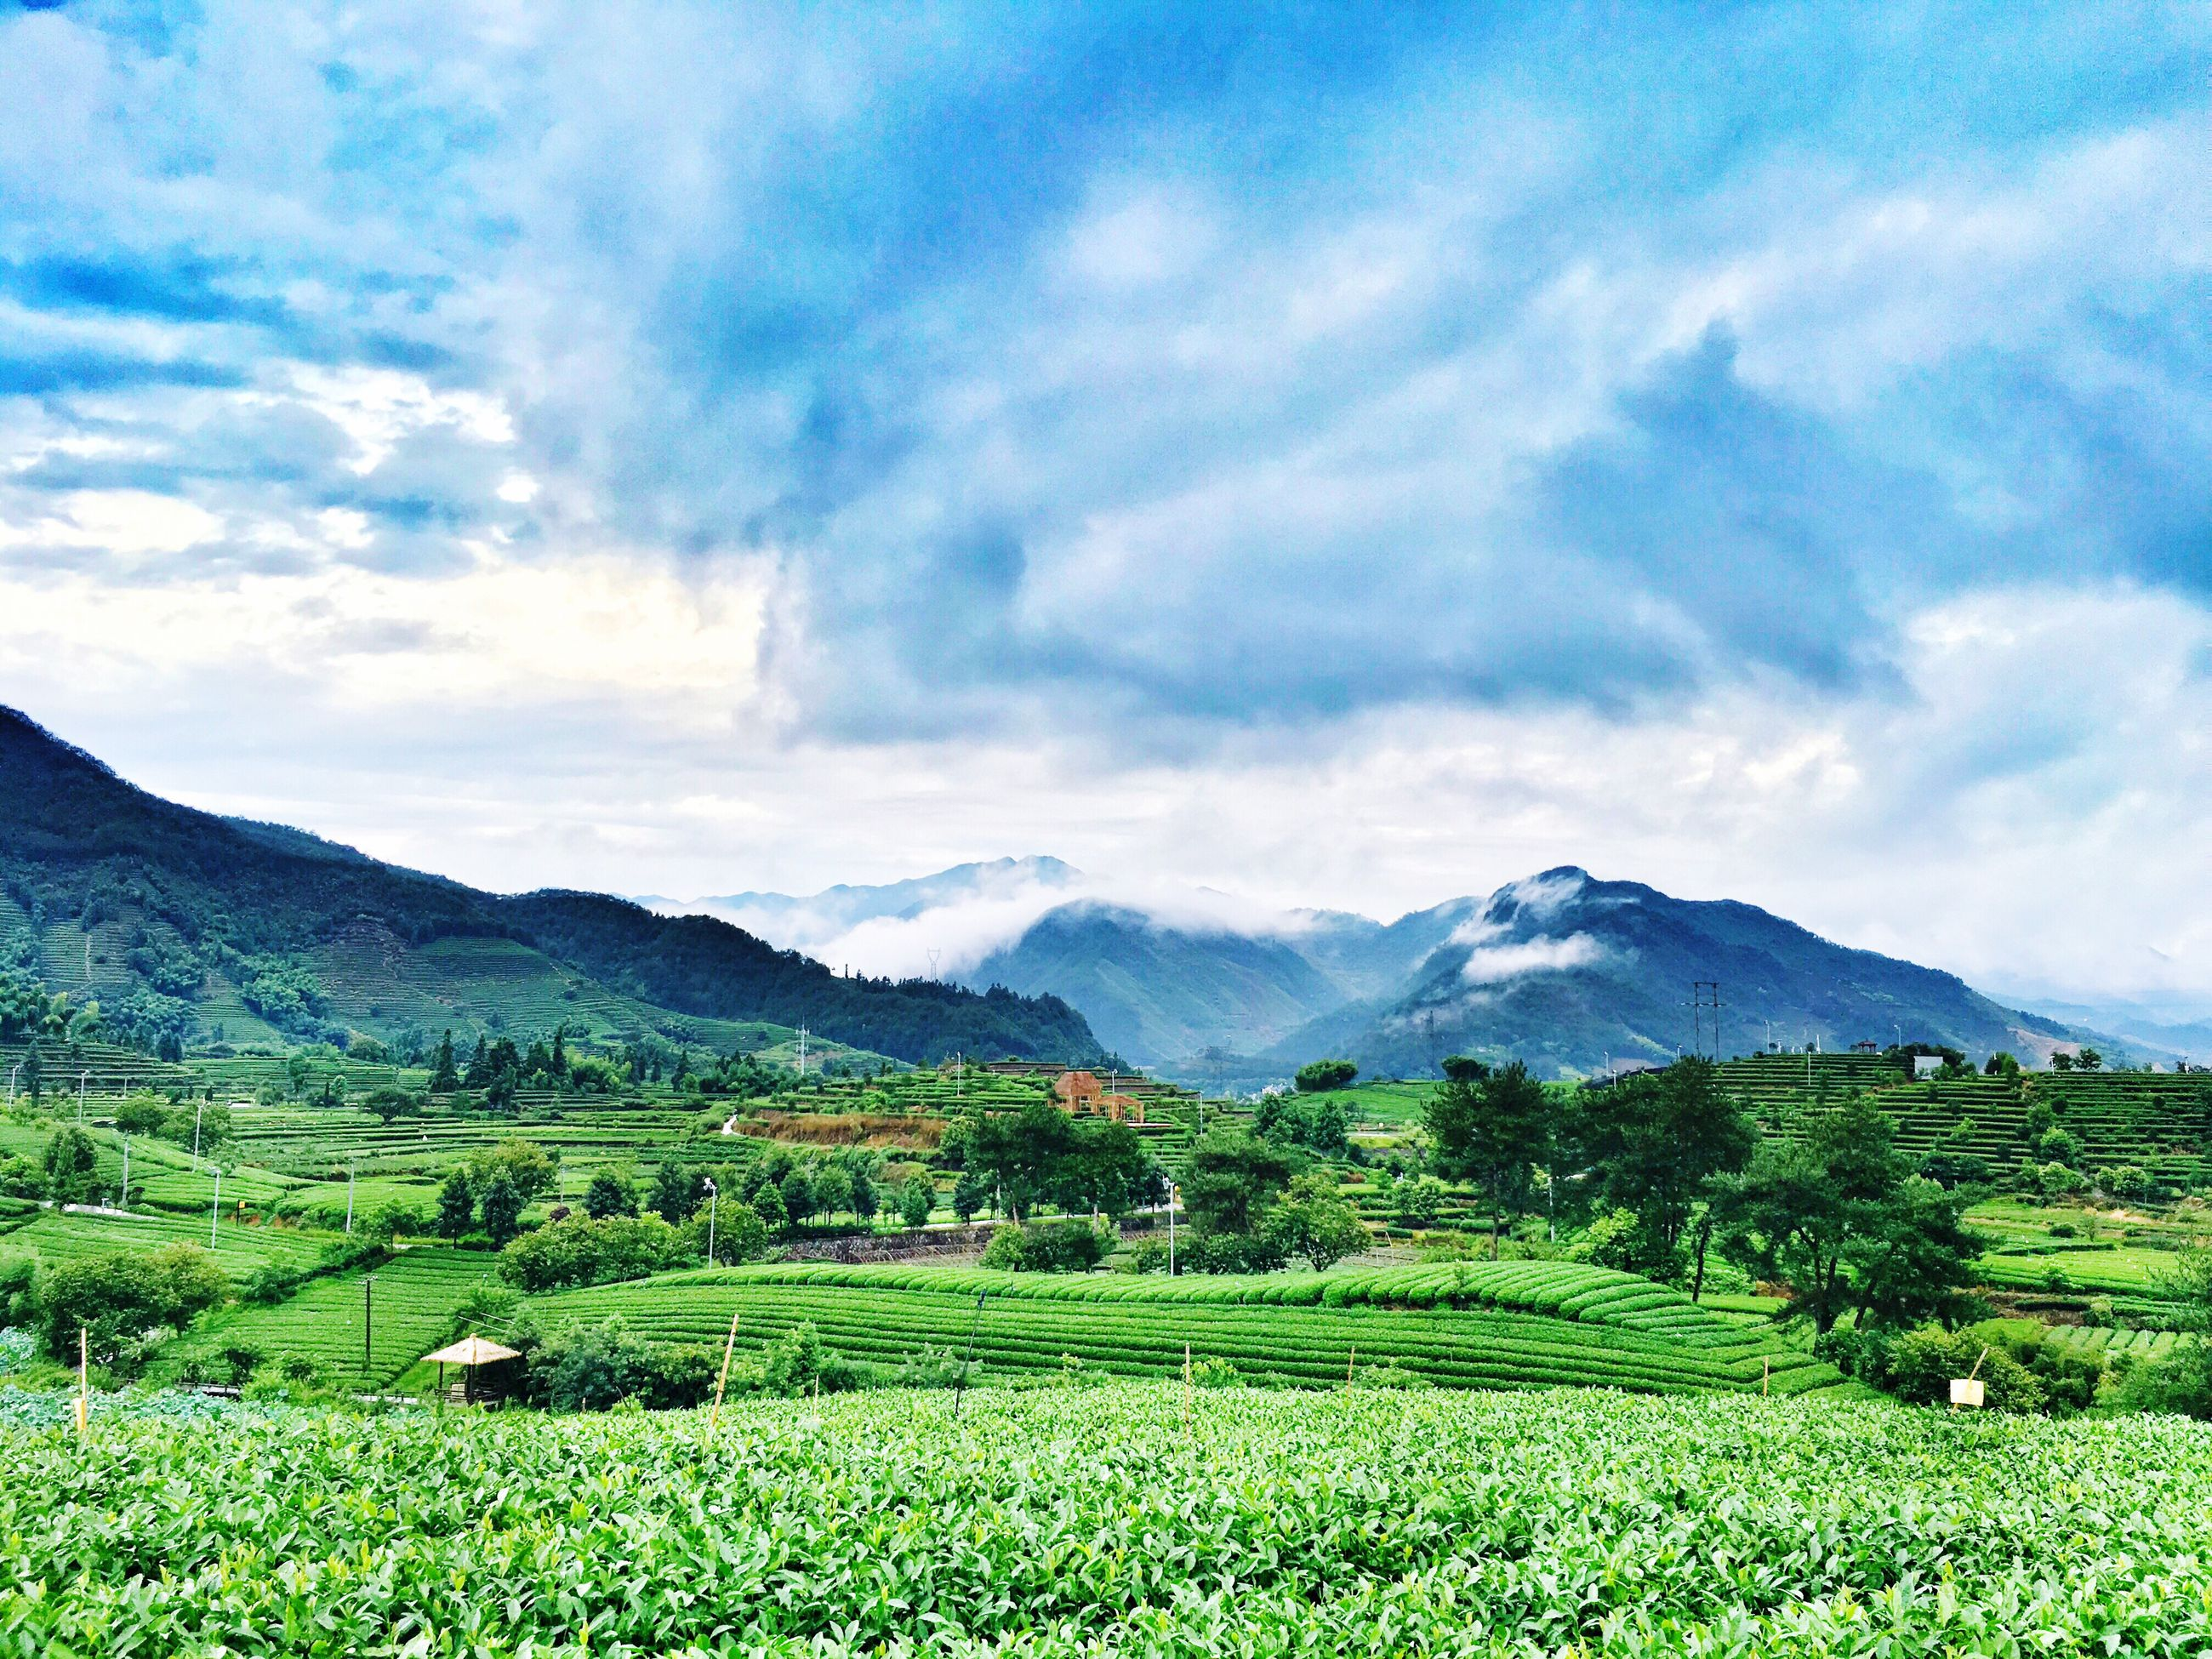 landscape, tranquil scene, mountain, tranquility, scenics, beauty in nature, sky, mountain range, field, nature, rural scene, green color, cloud - sky, grass, growth, non-urban scene, cloud, idyllic, countryside, cloudy, plant, remote, day, no people, outdoors, horizon over land, green, non urban scene, hill, grassy, majestic, lush foliage